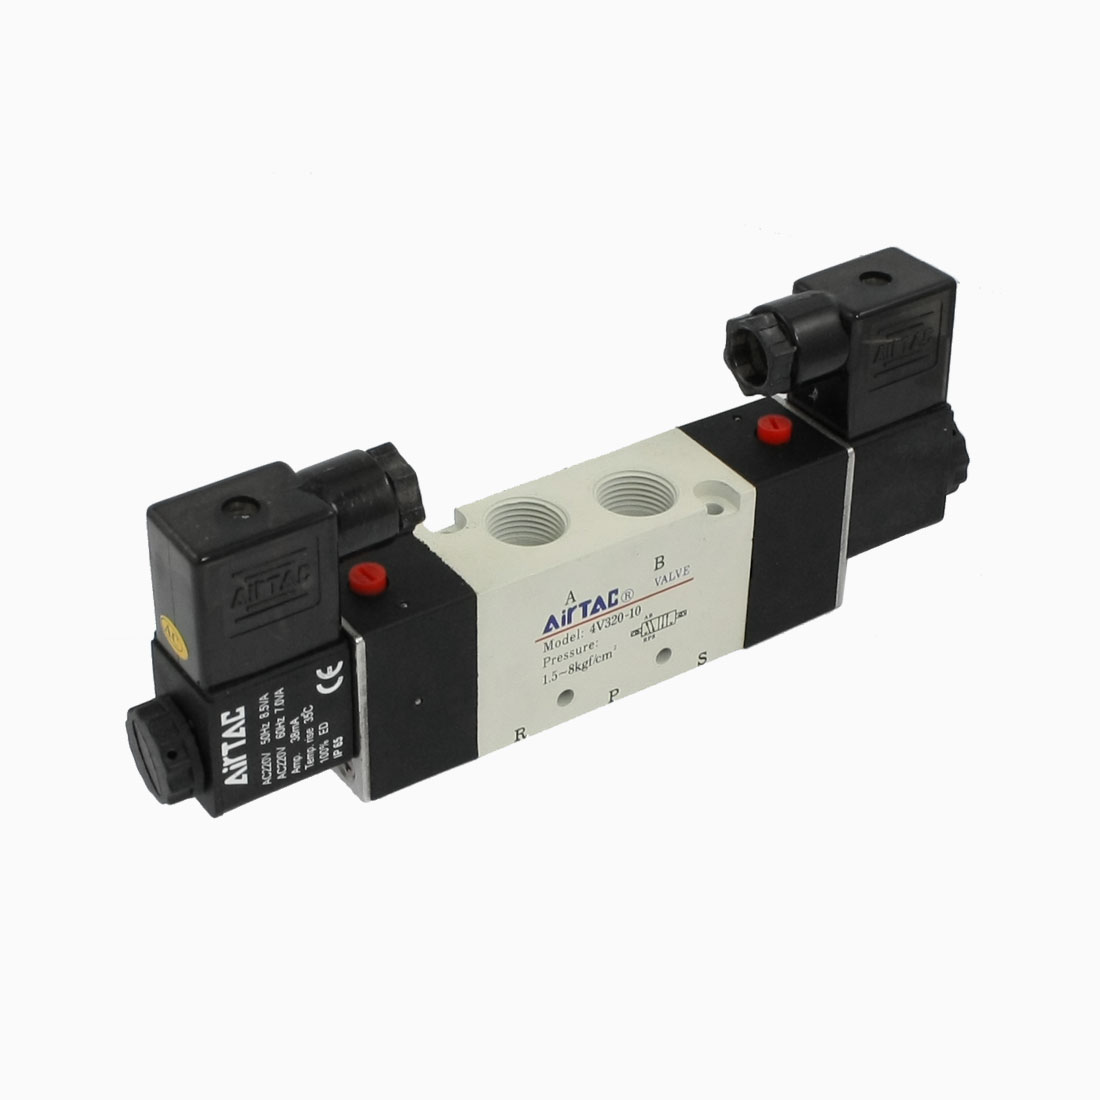 AC220V 4V320-10 2 Position 5 Way Pneumatic Solenoid Valve